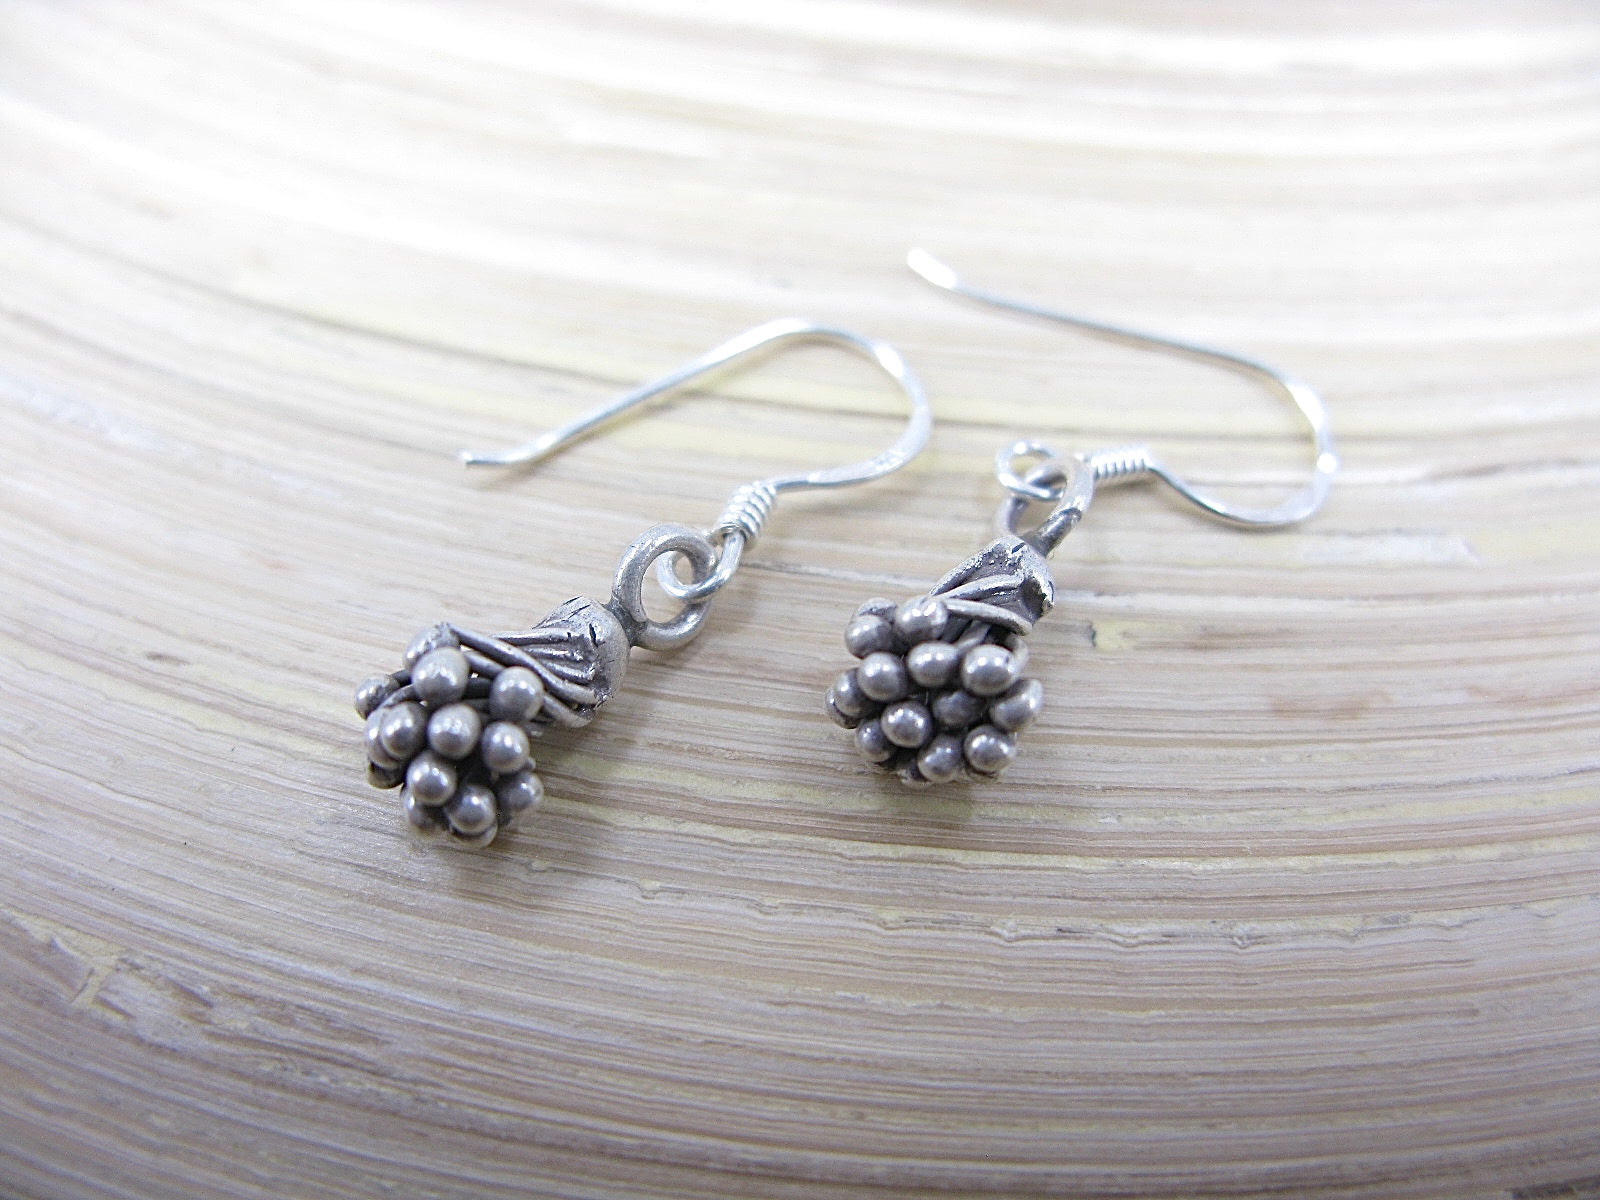 Lotus Flower Tribal Oxidized 925 Sterling Silver Ear Wire Earrings